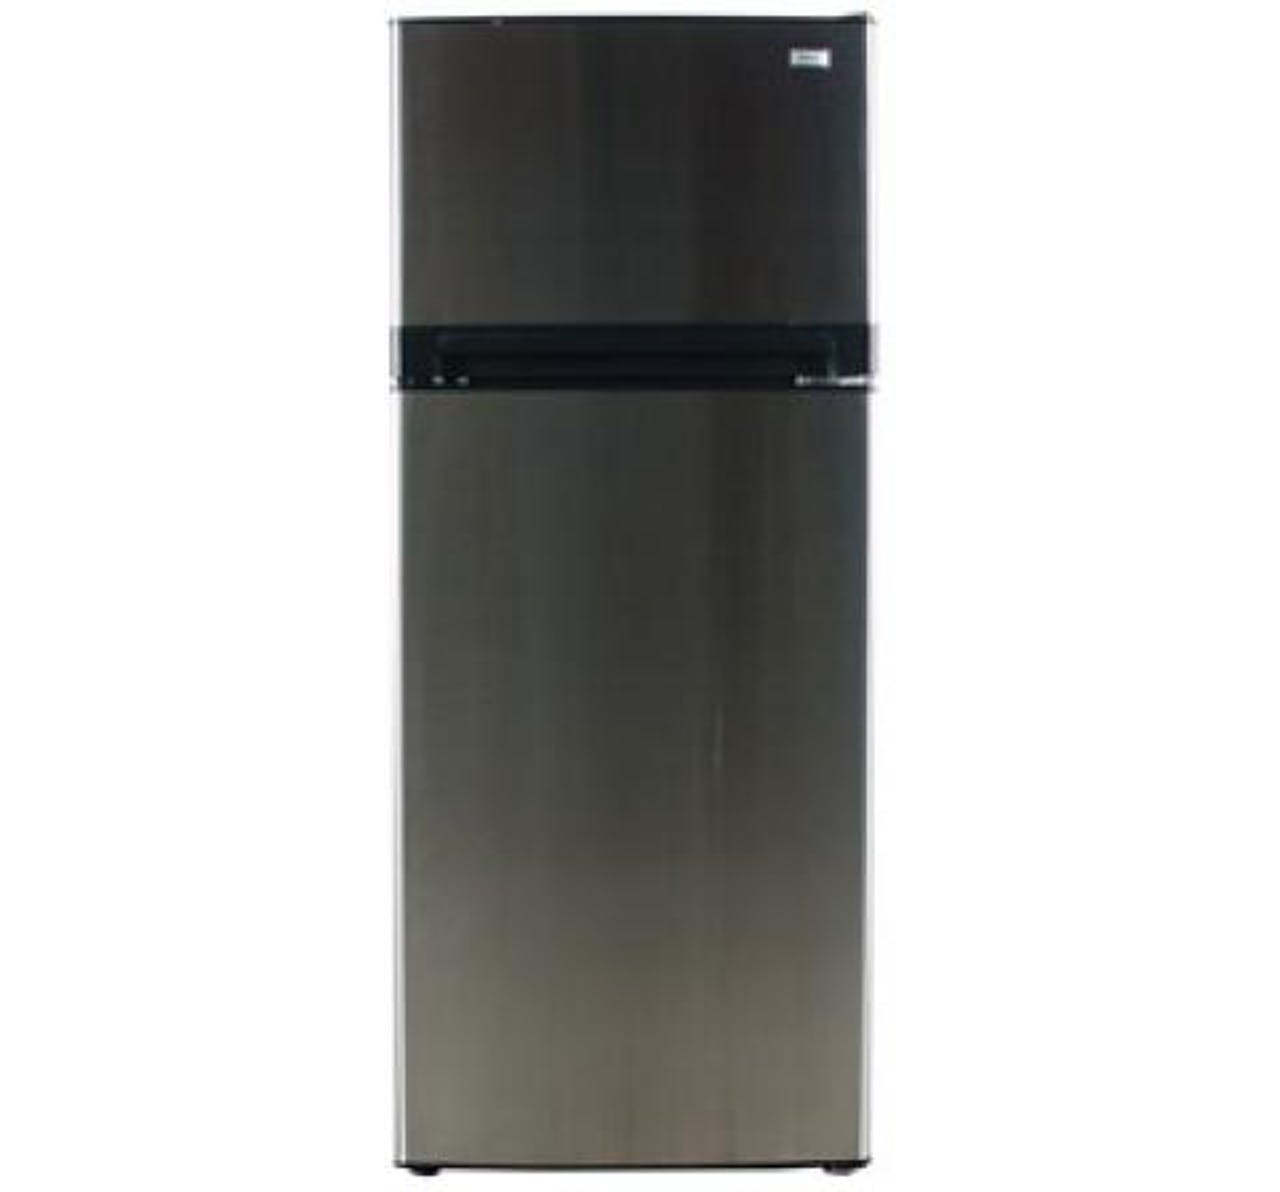 Product photo of a Haier top mount refrigerator currently being recalled